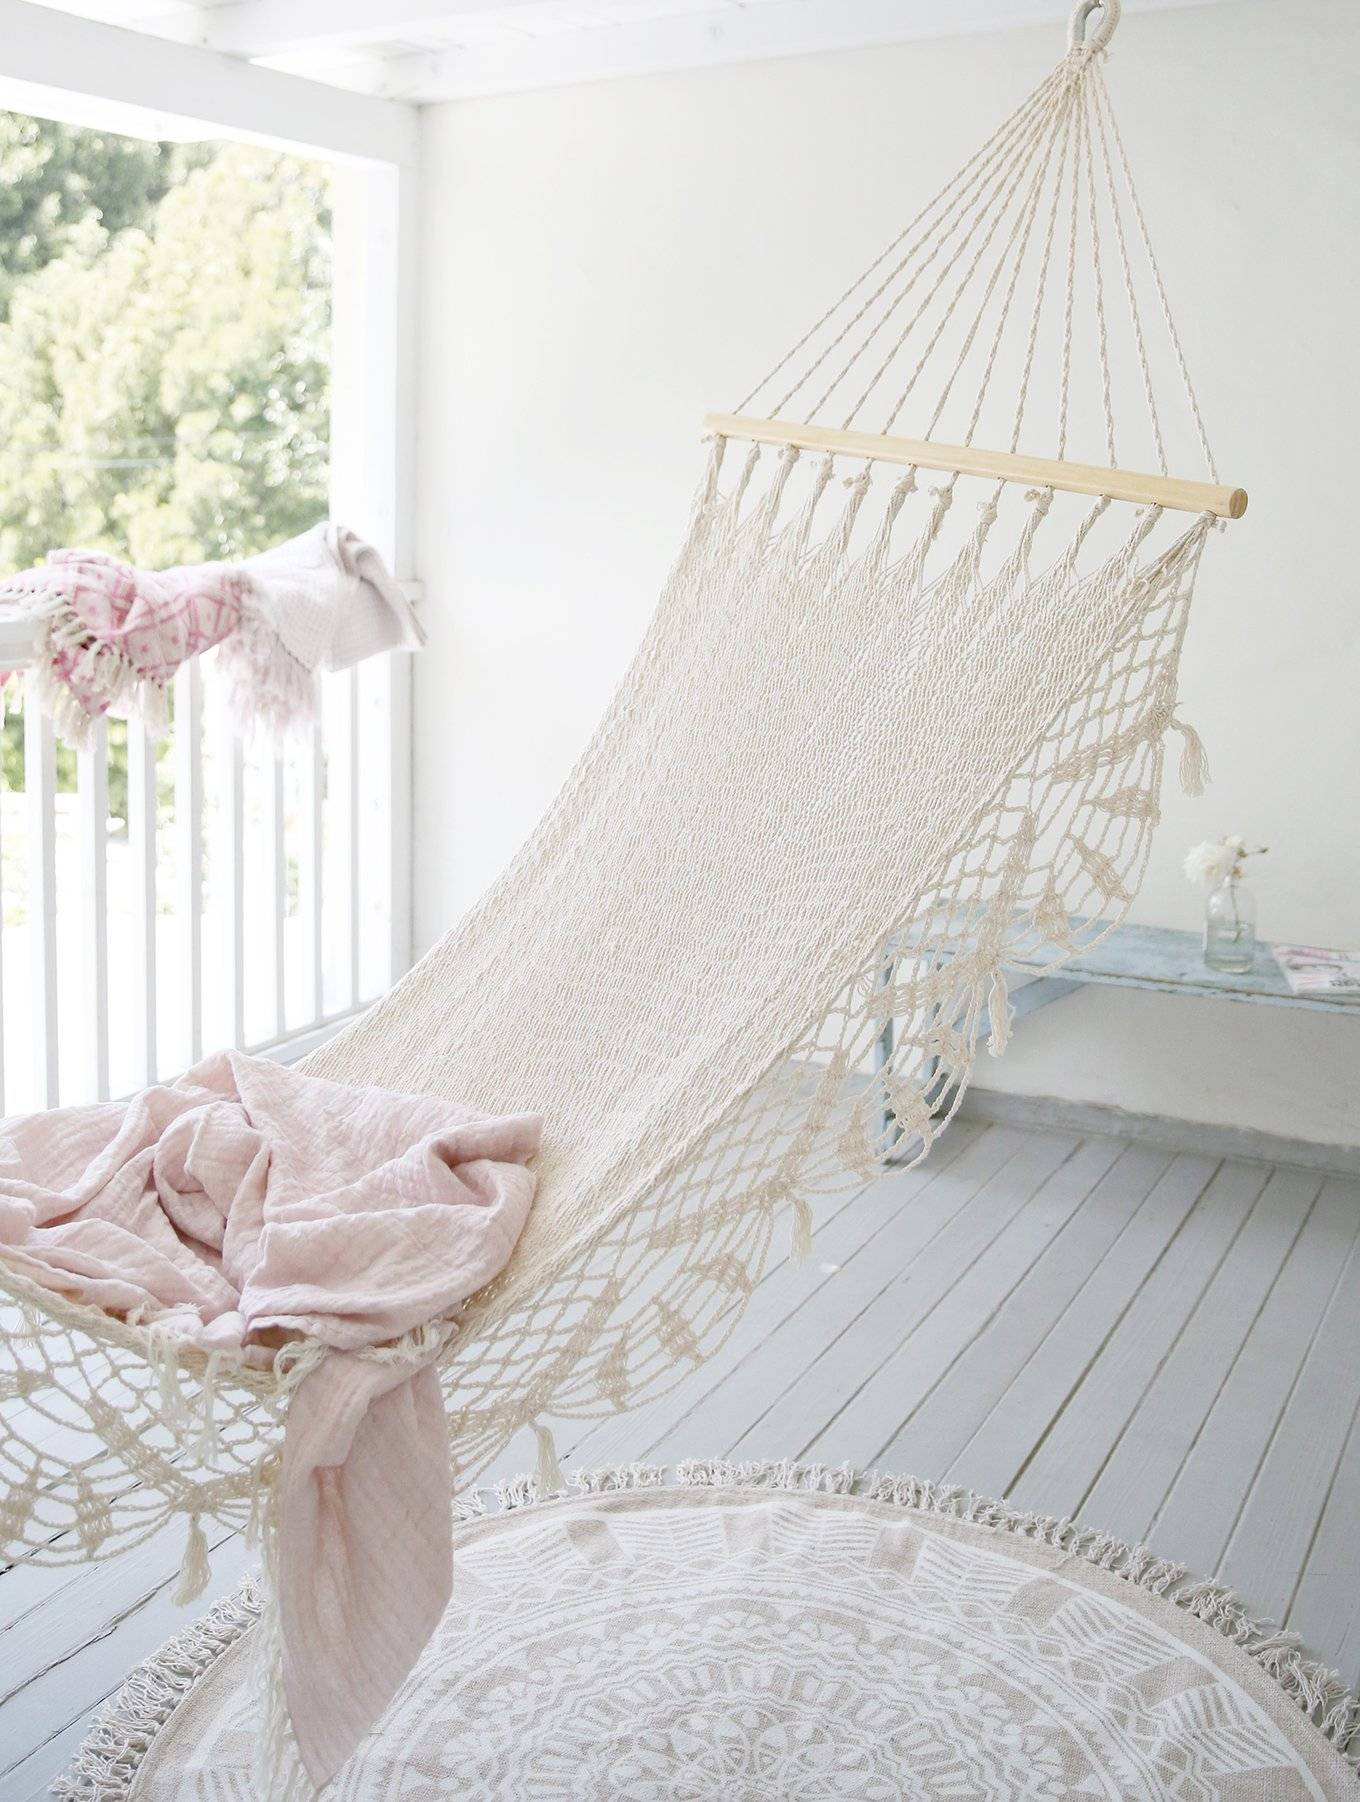 Shabby chic Rachel Ashwell hammock and pink throw. #shabbychic #rachelashwell #hammock #summerliving #palepink